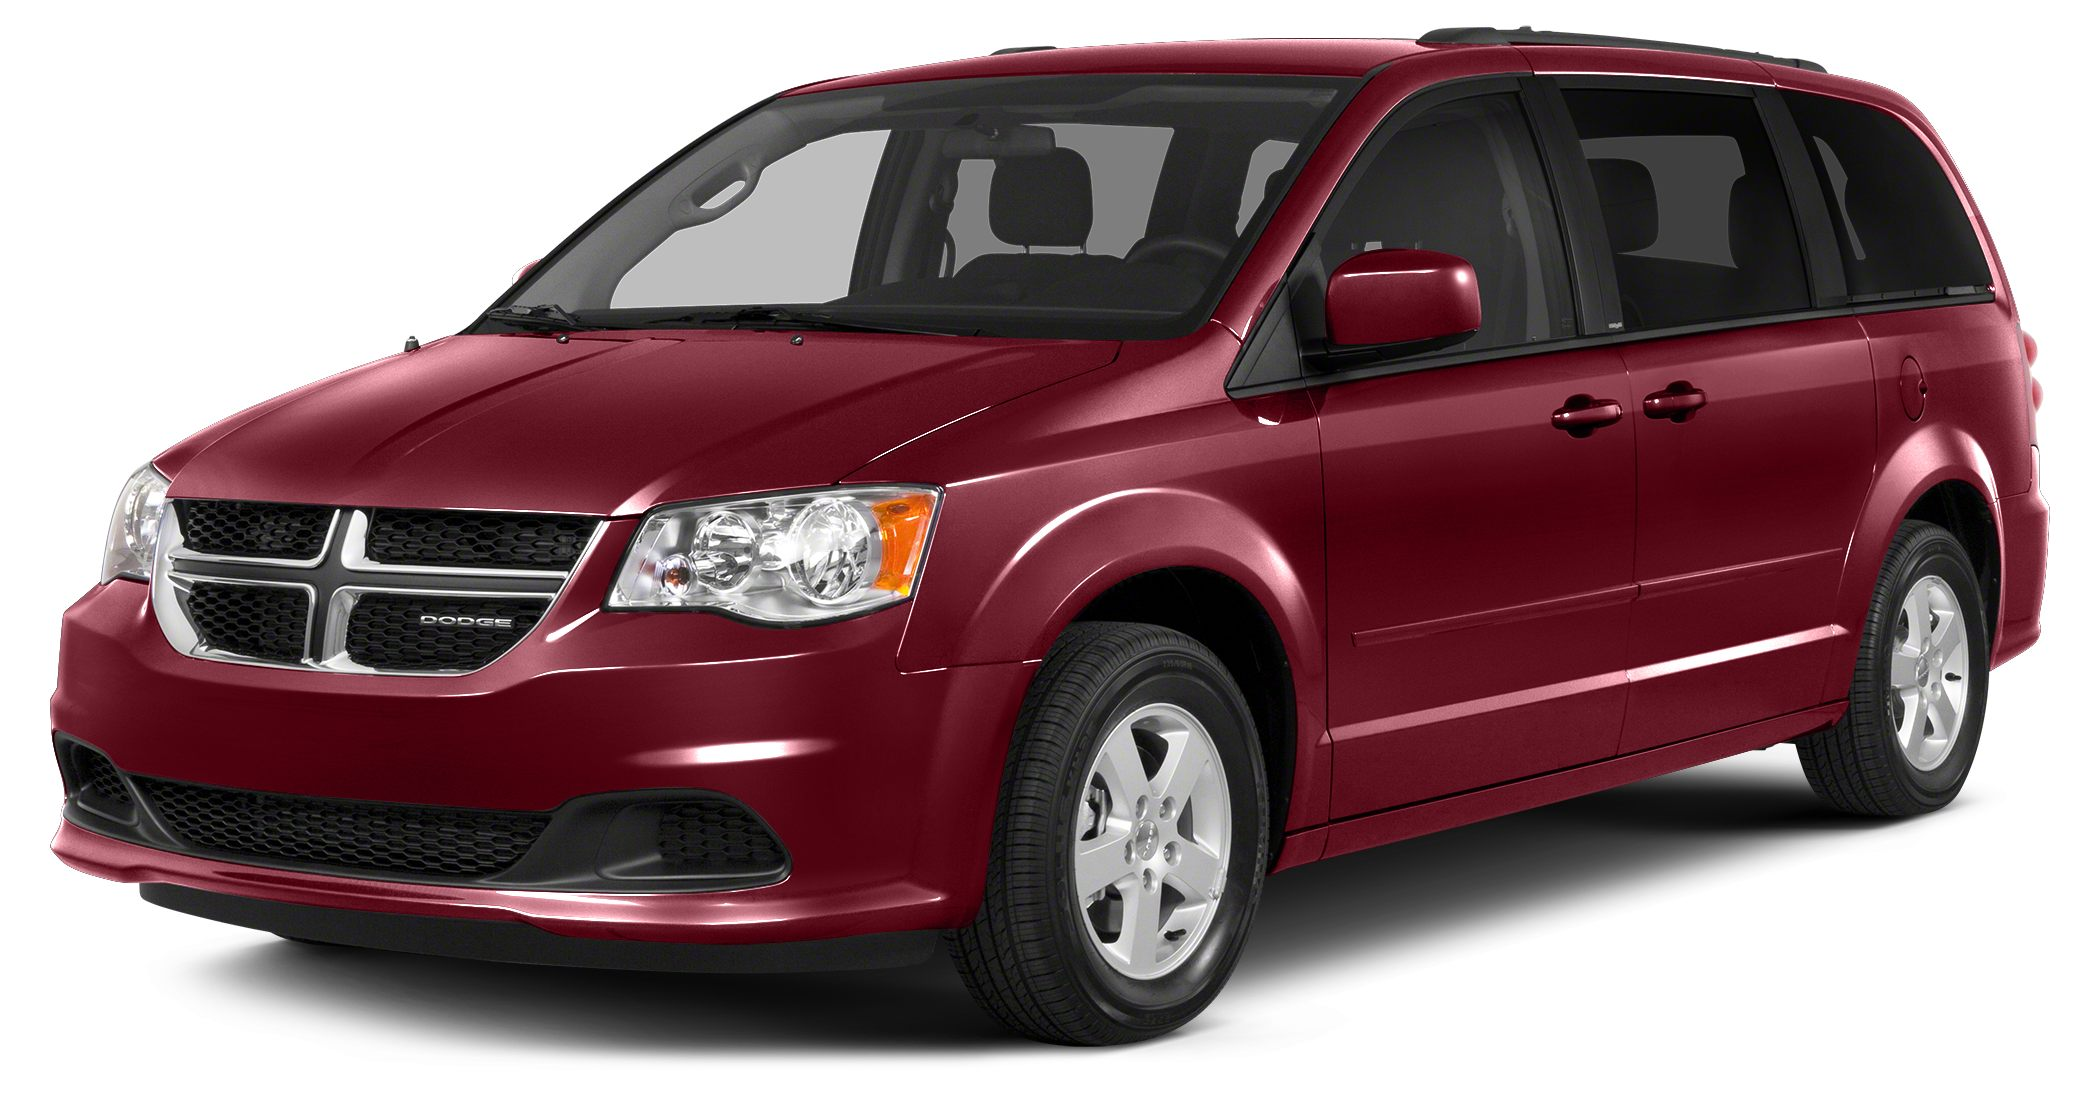 2011 Dodge Grand Caravan Crew At Advantage Chrysler you know you are getting a safe and dependable